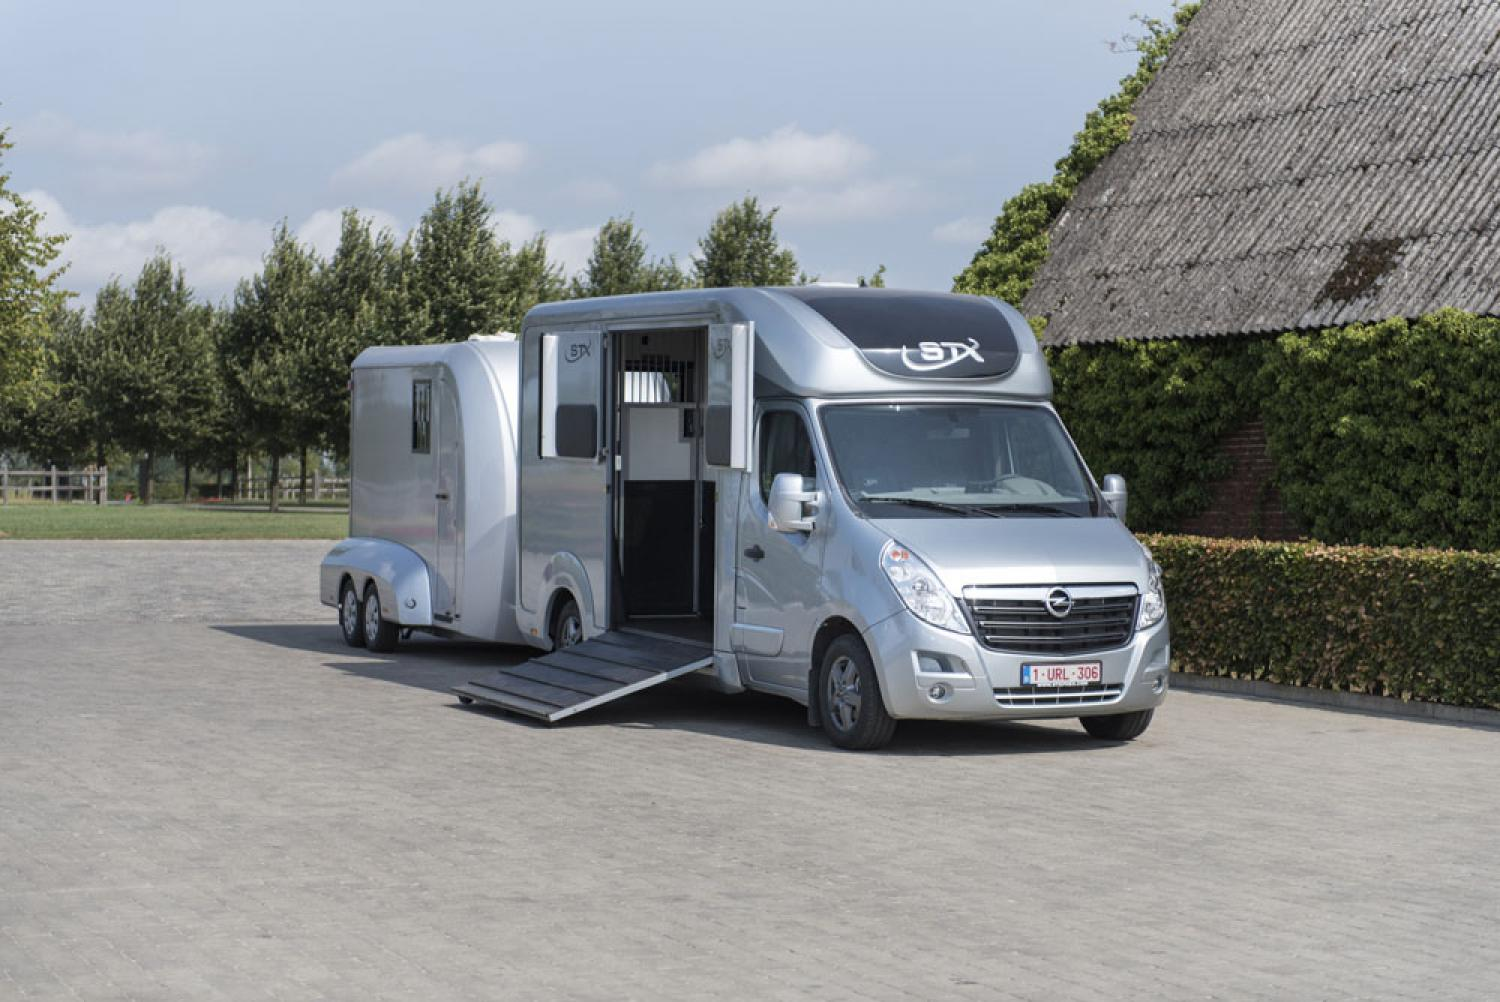 Van stx stephex en stalle version haras